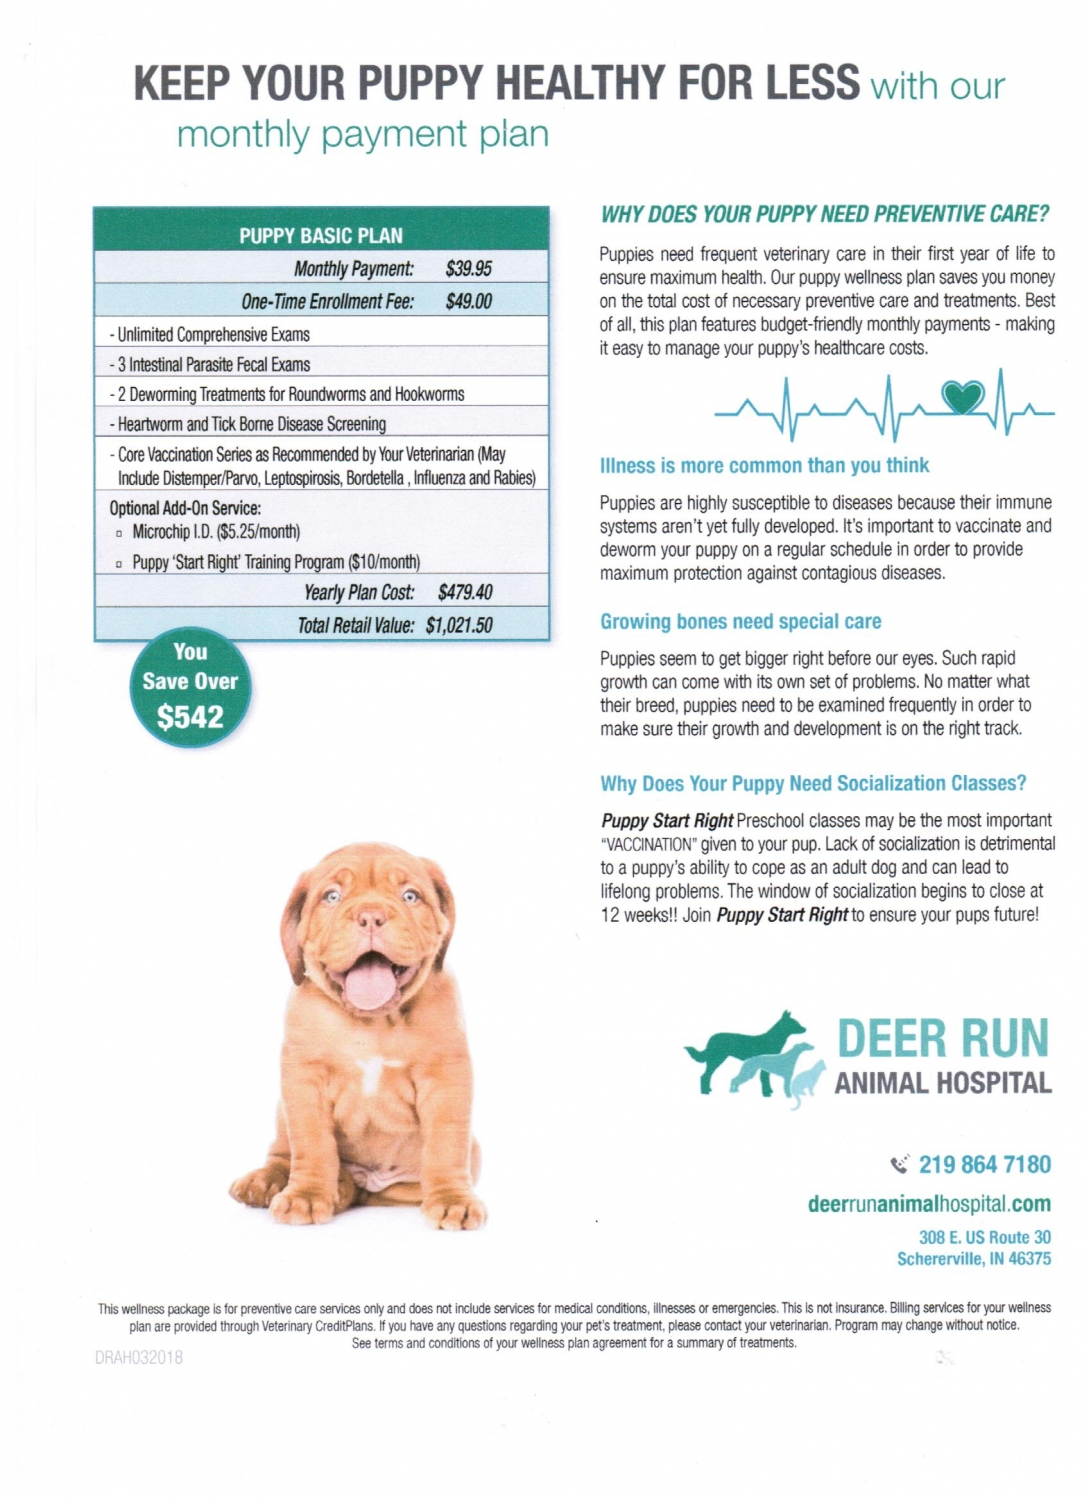 Wellness Dogs Vet In Schererville Deer Run Animal Hospital